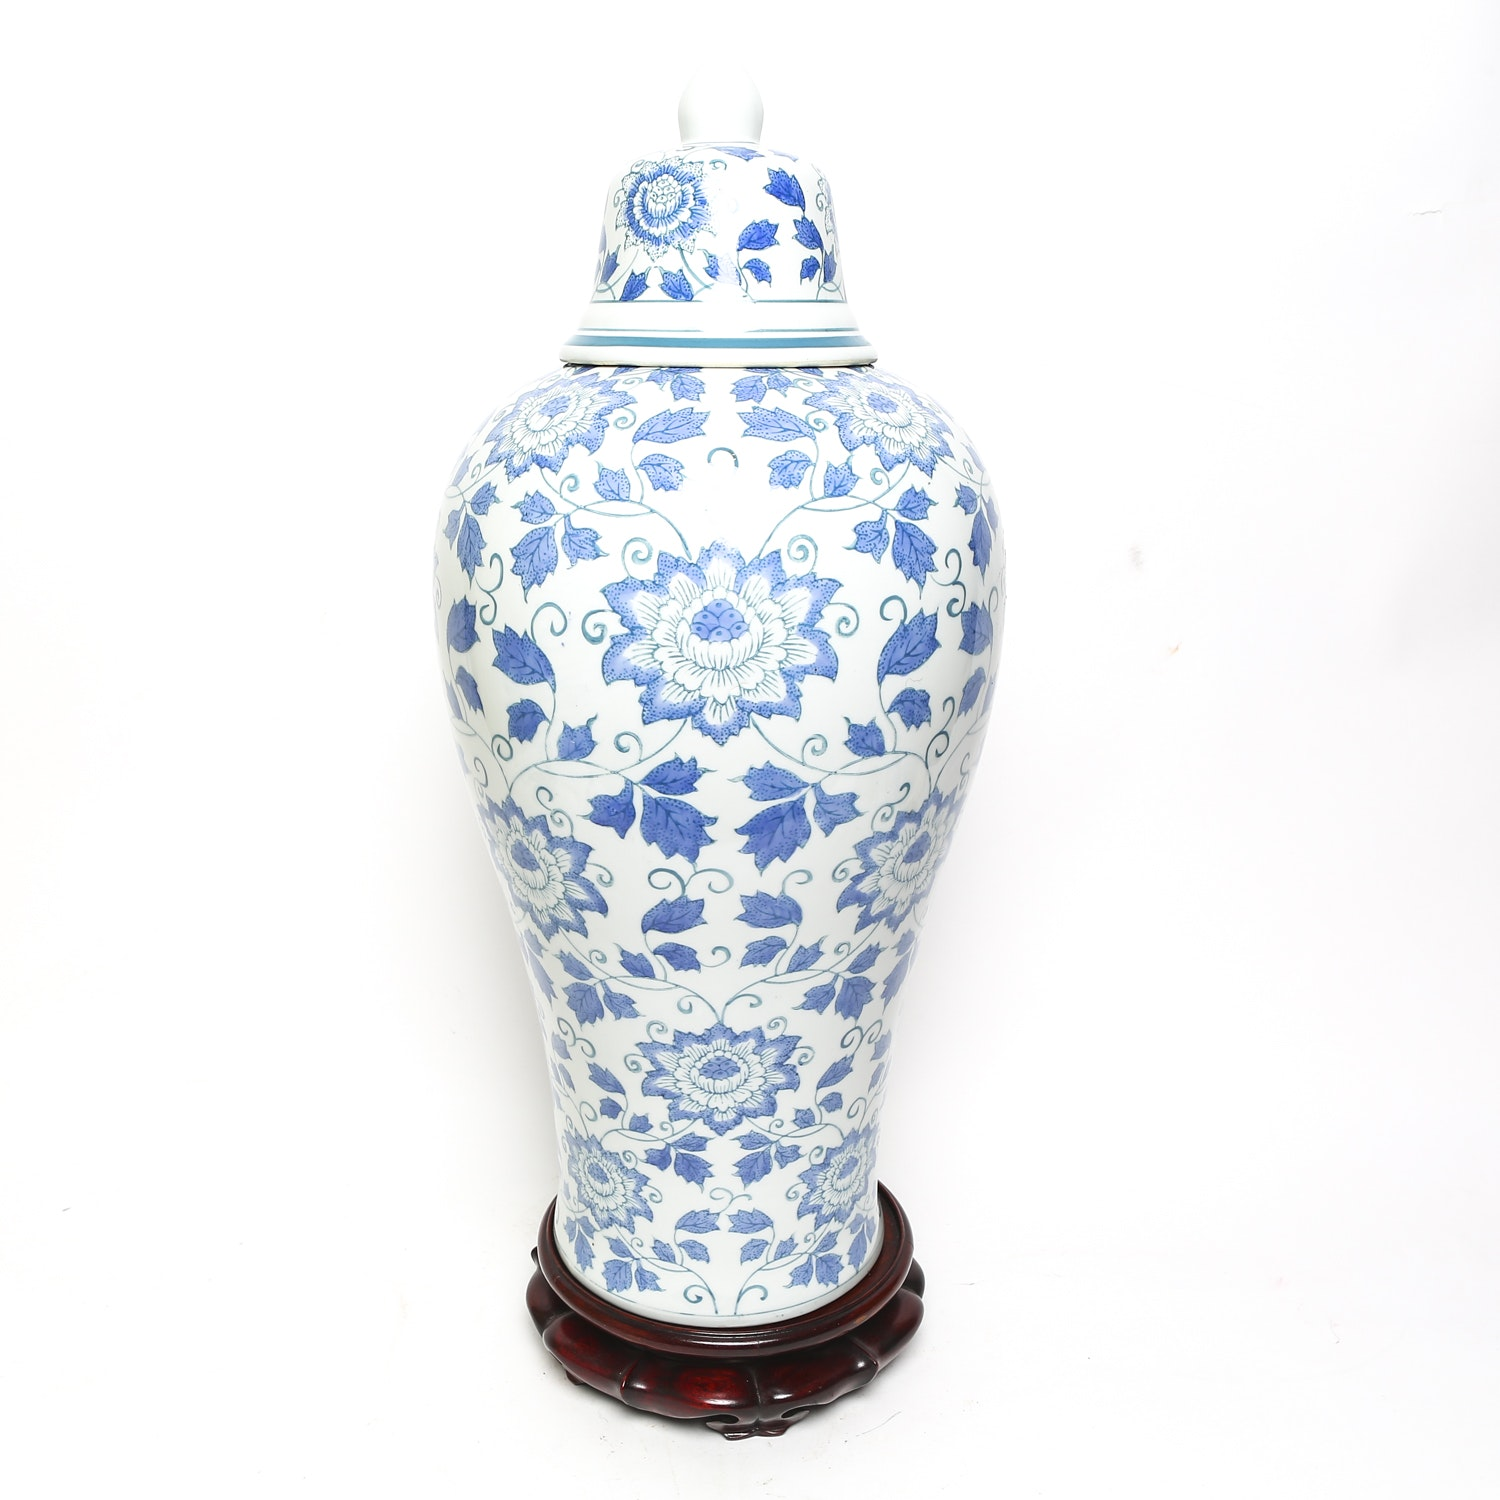 Large Blue and White Porcelain Lidded Vessel with Wooden Stand